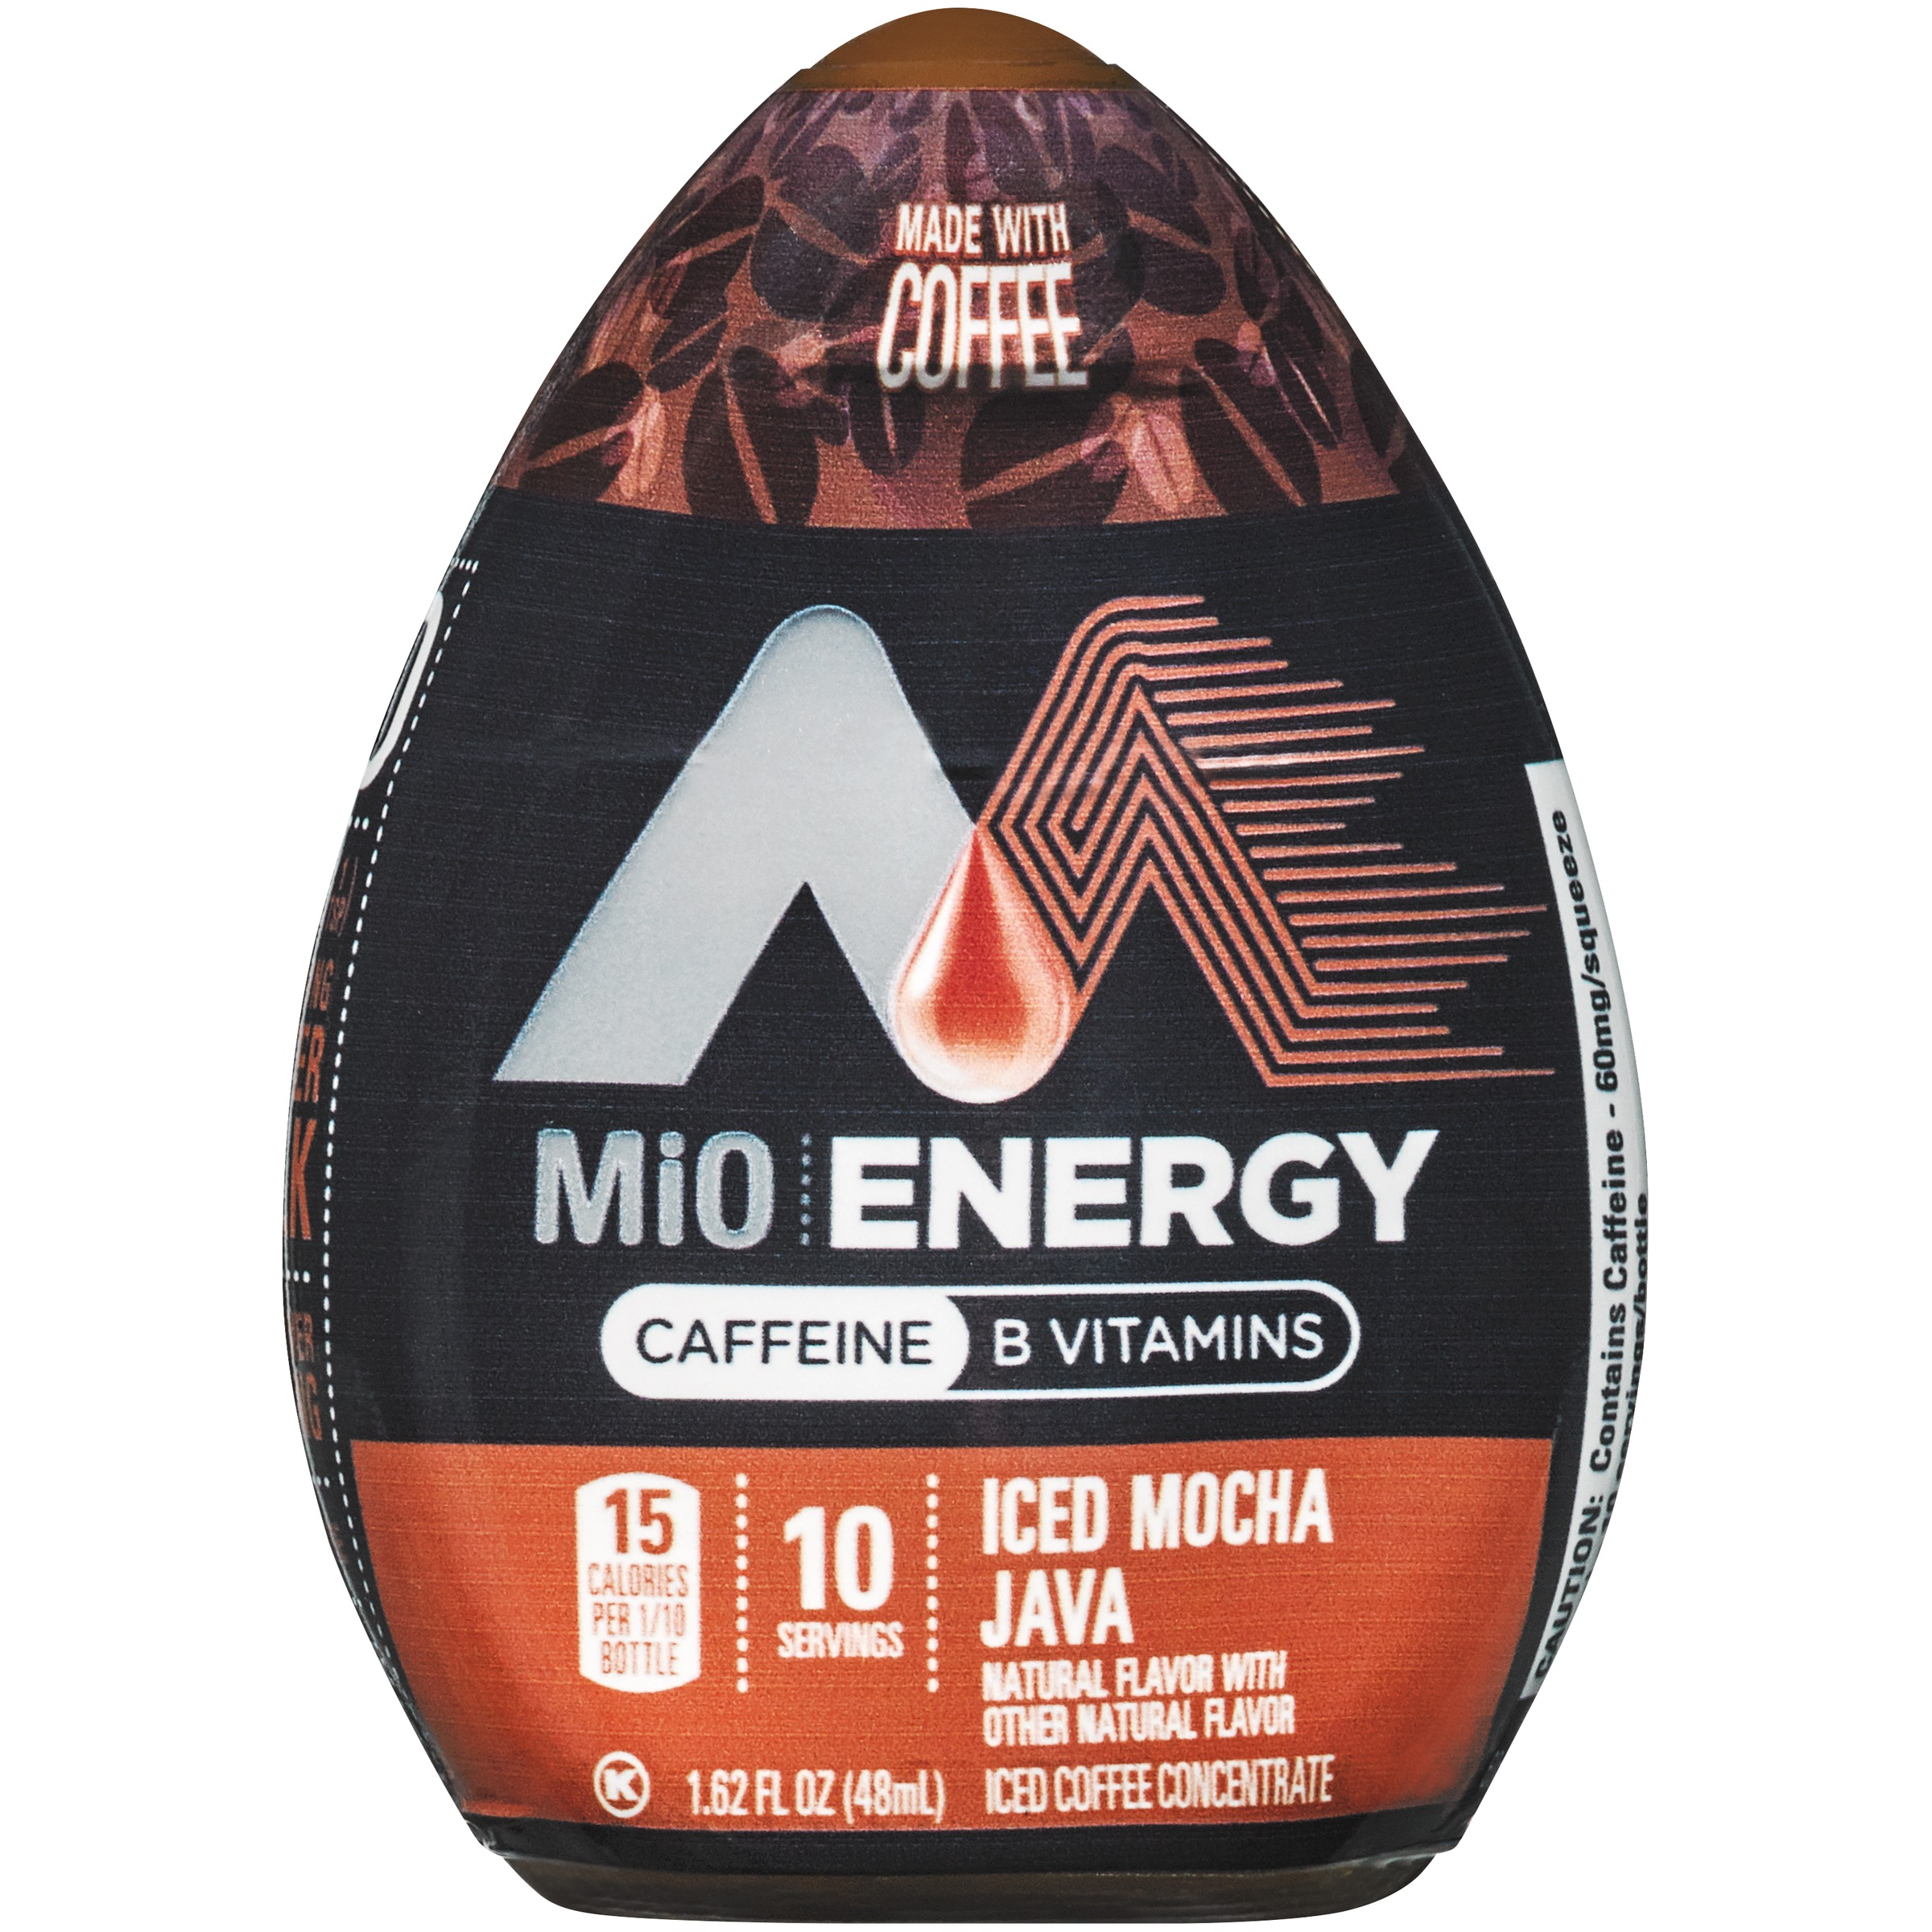 (2 pack) MiO Energy Iced Mocha Java Iced Coffee Concentrate, 12 - 1.62 fl oz Bottles